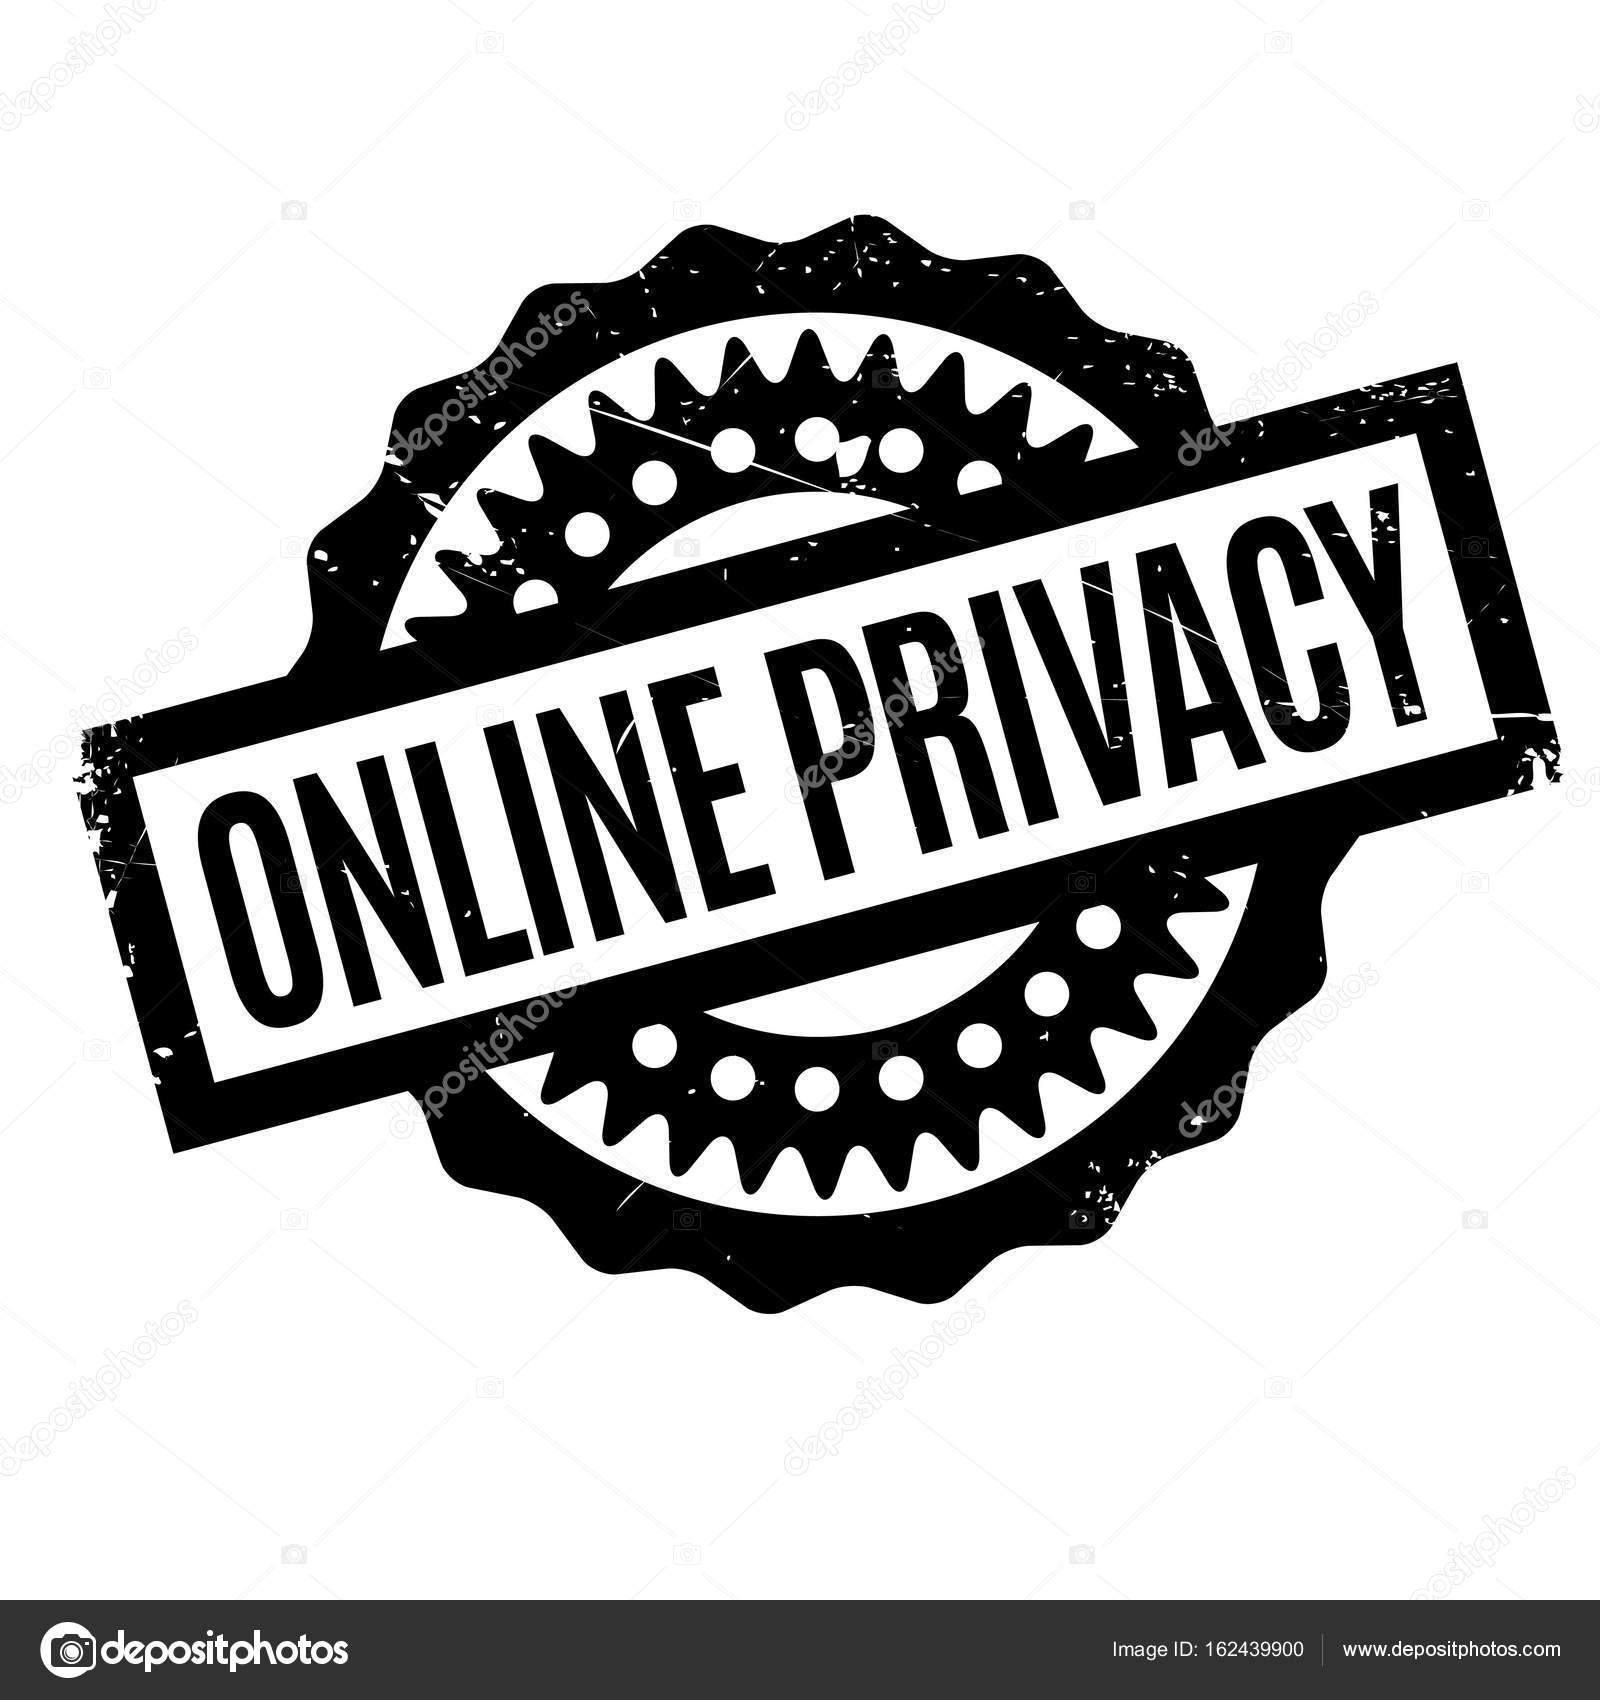 online privacy rubber stamp stock vector lkeskinen0 162439900